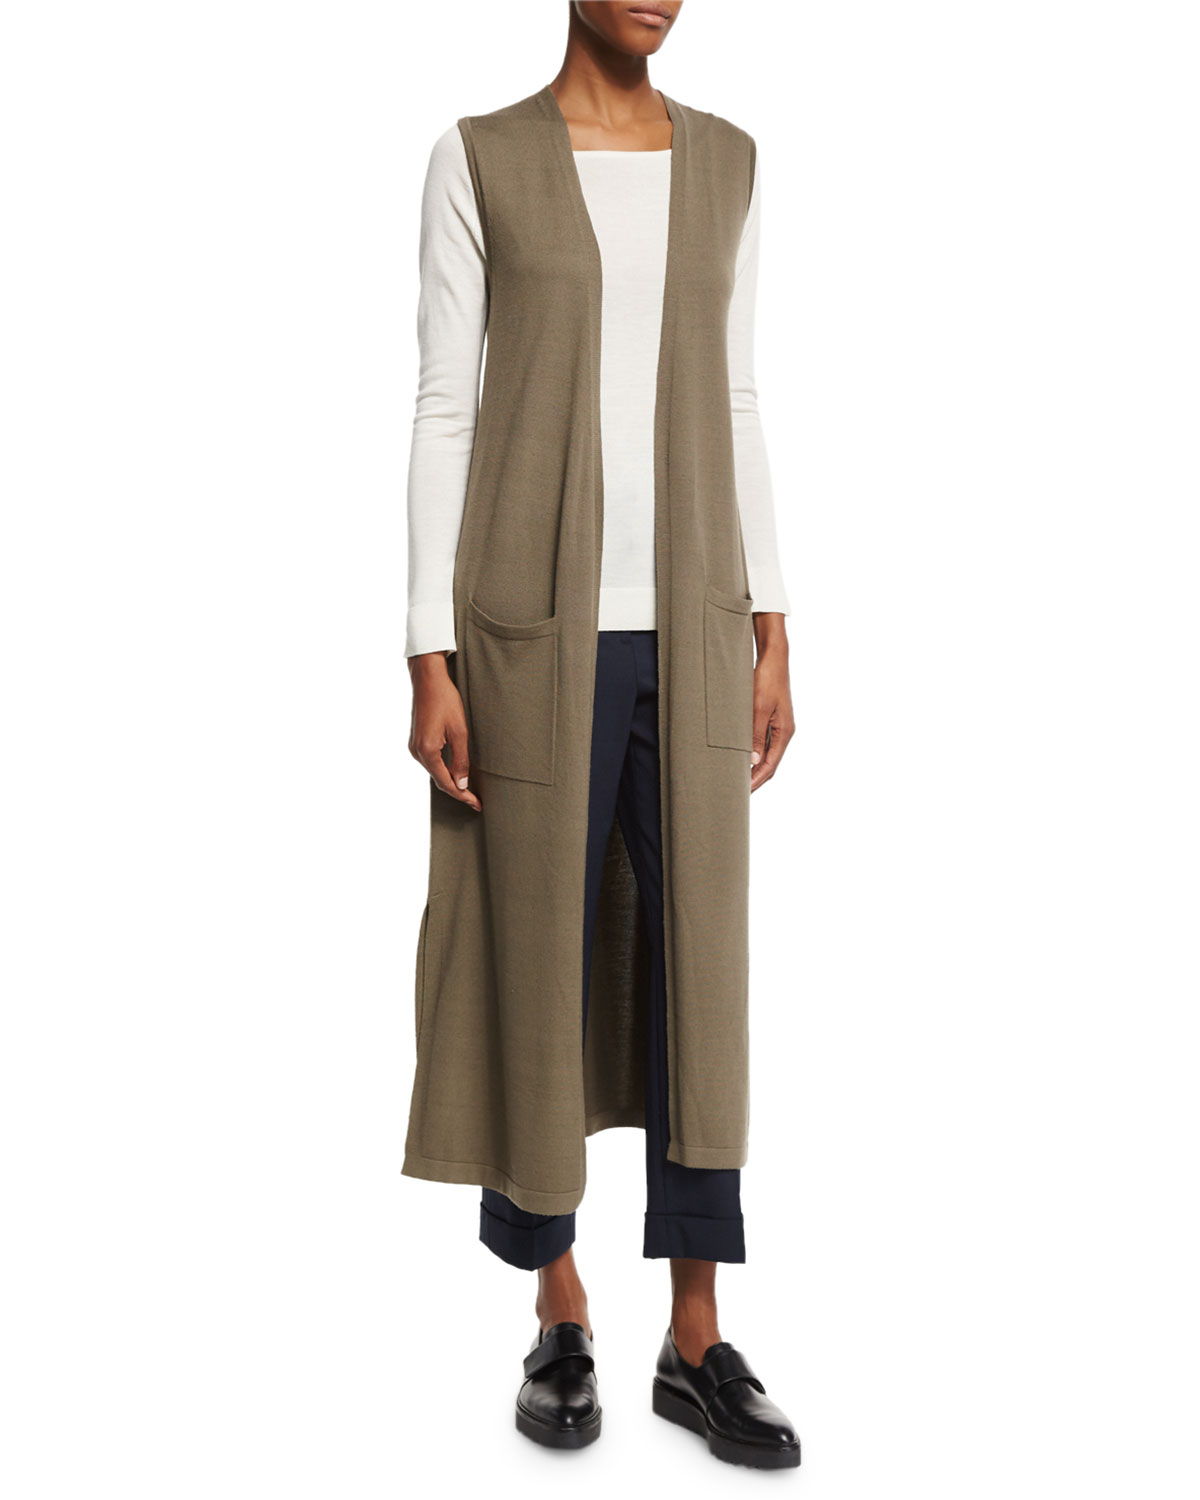 Torina Sl Refine Sleeveless Cardigan, Moss